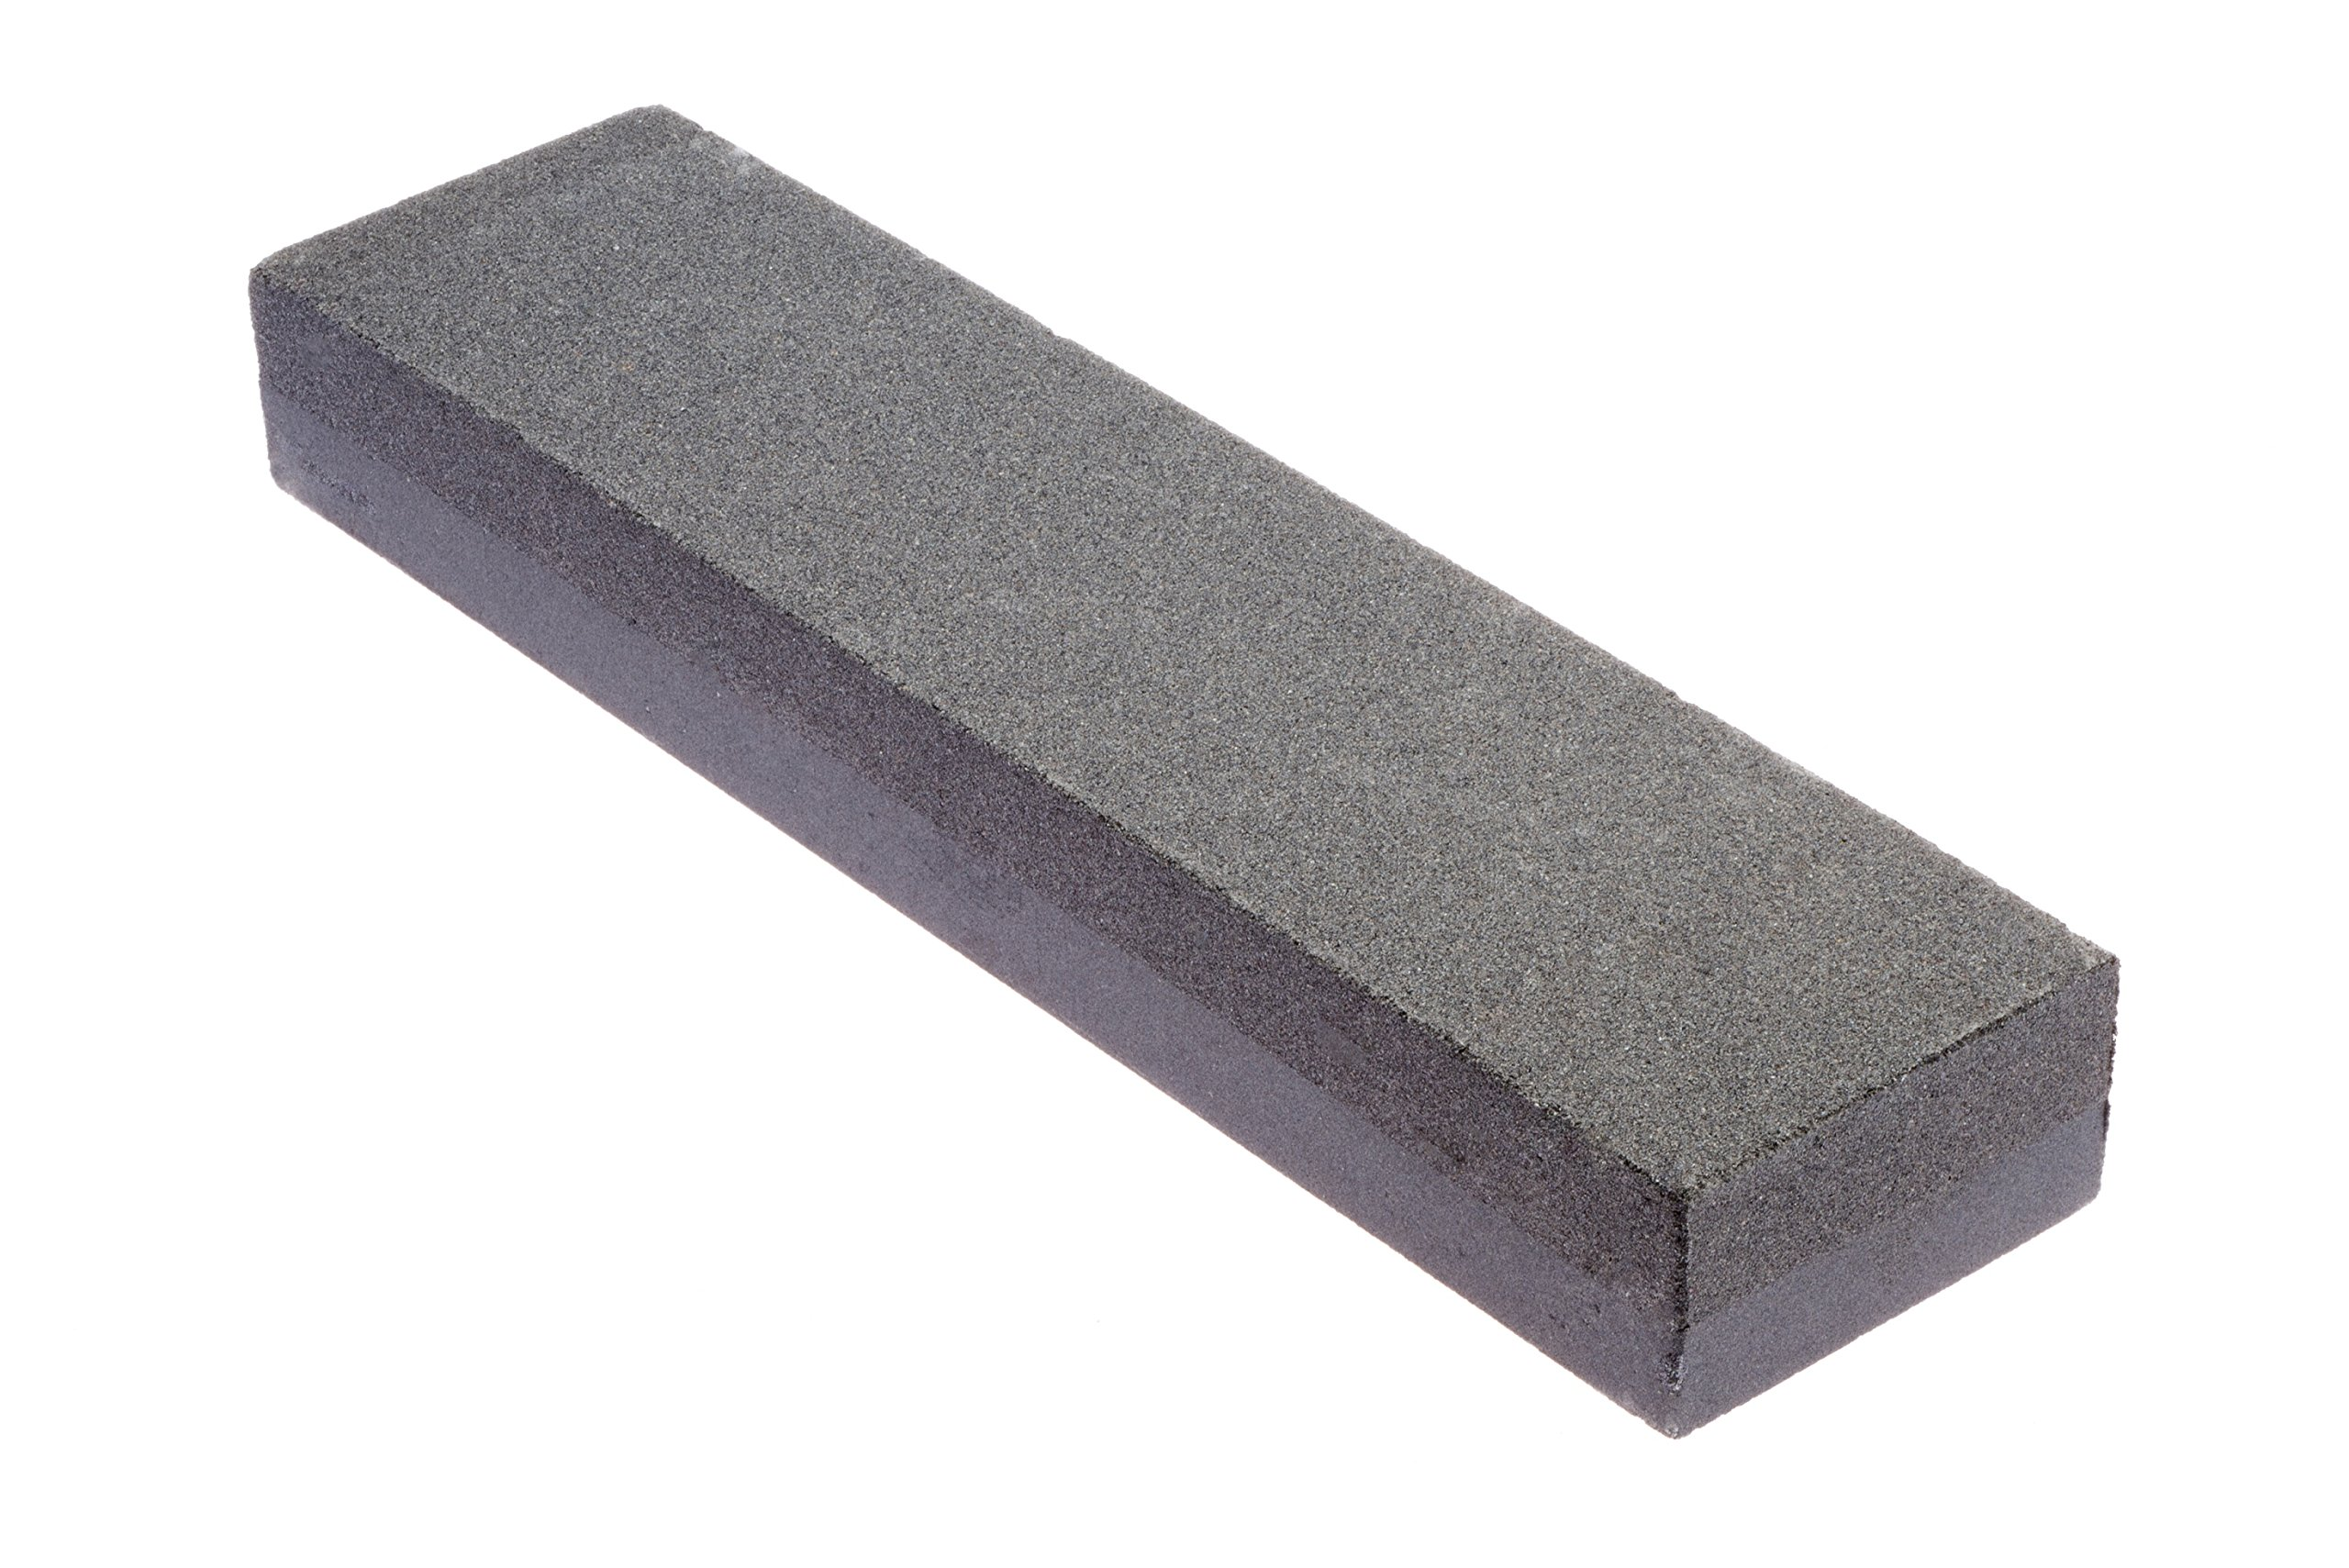 SE SS72BK 8'' Silicon Carbide Double-Sided Whetstone, Grits 120 and 240